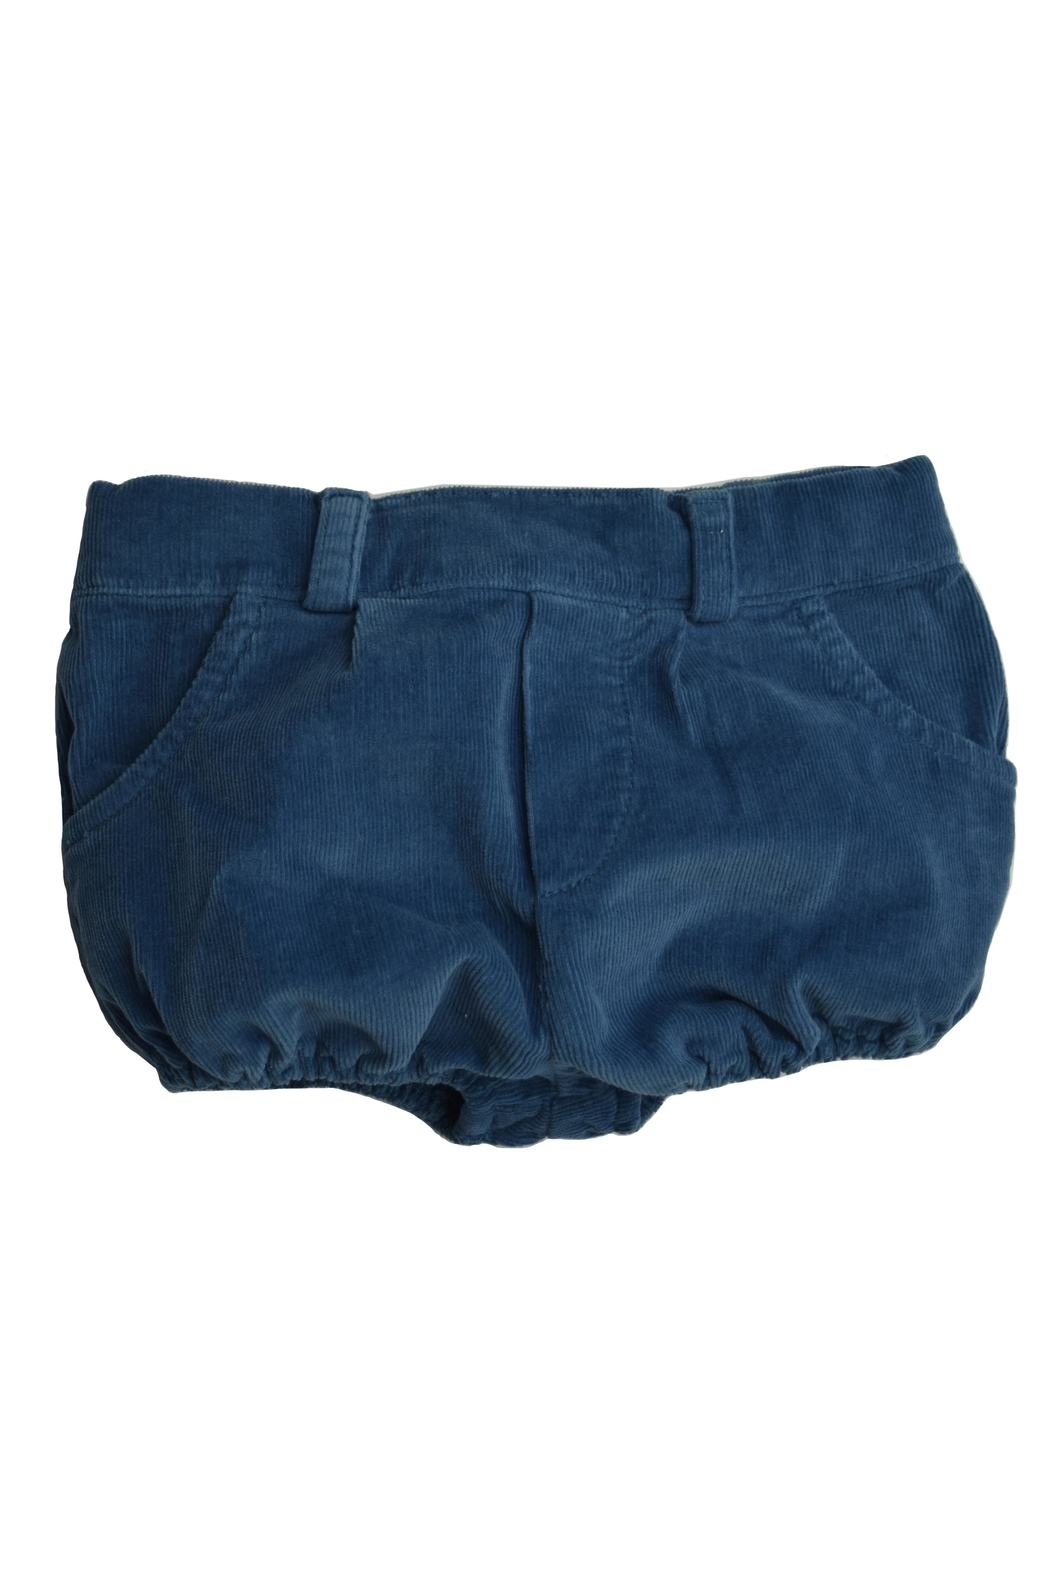 Foque Blue Corduroy Shorts From Florida By Yoyo Children S